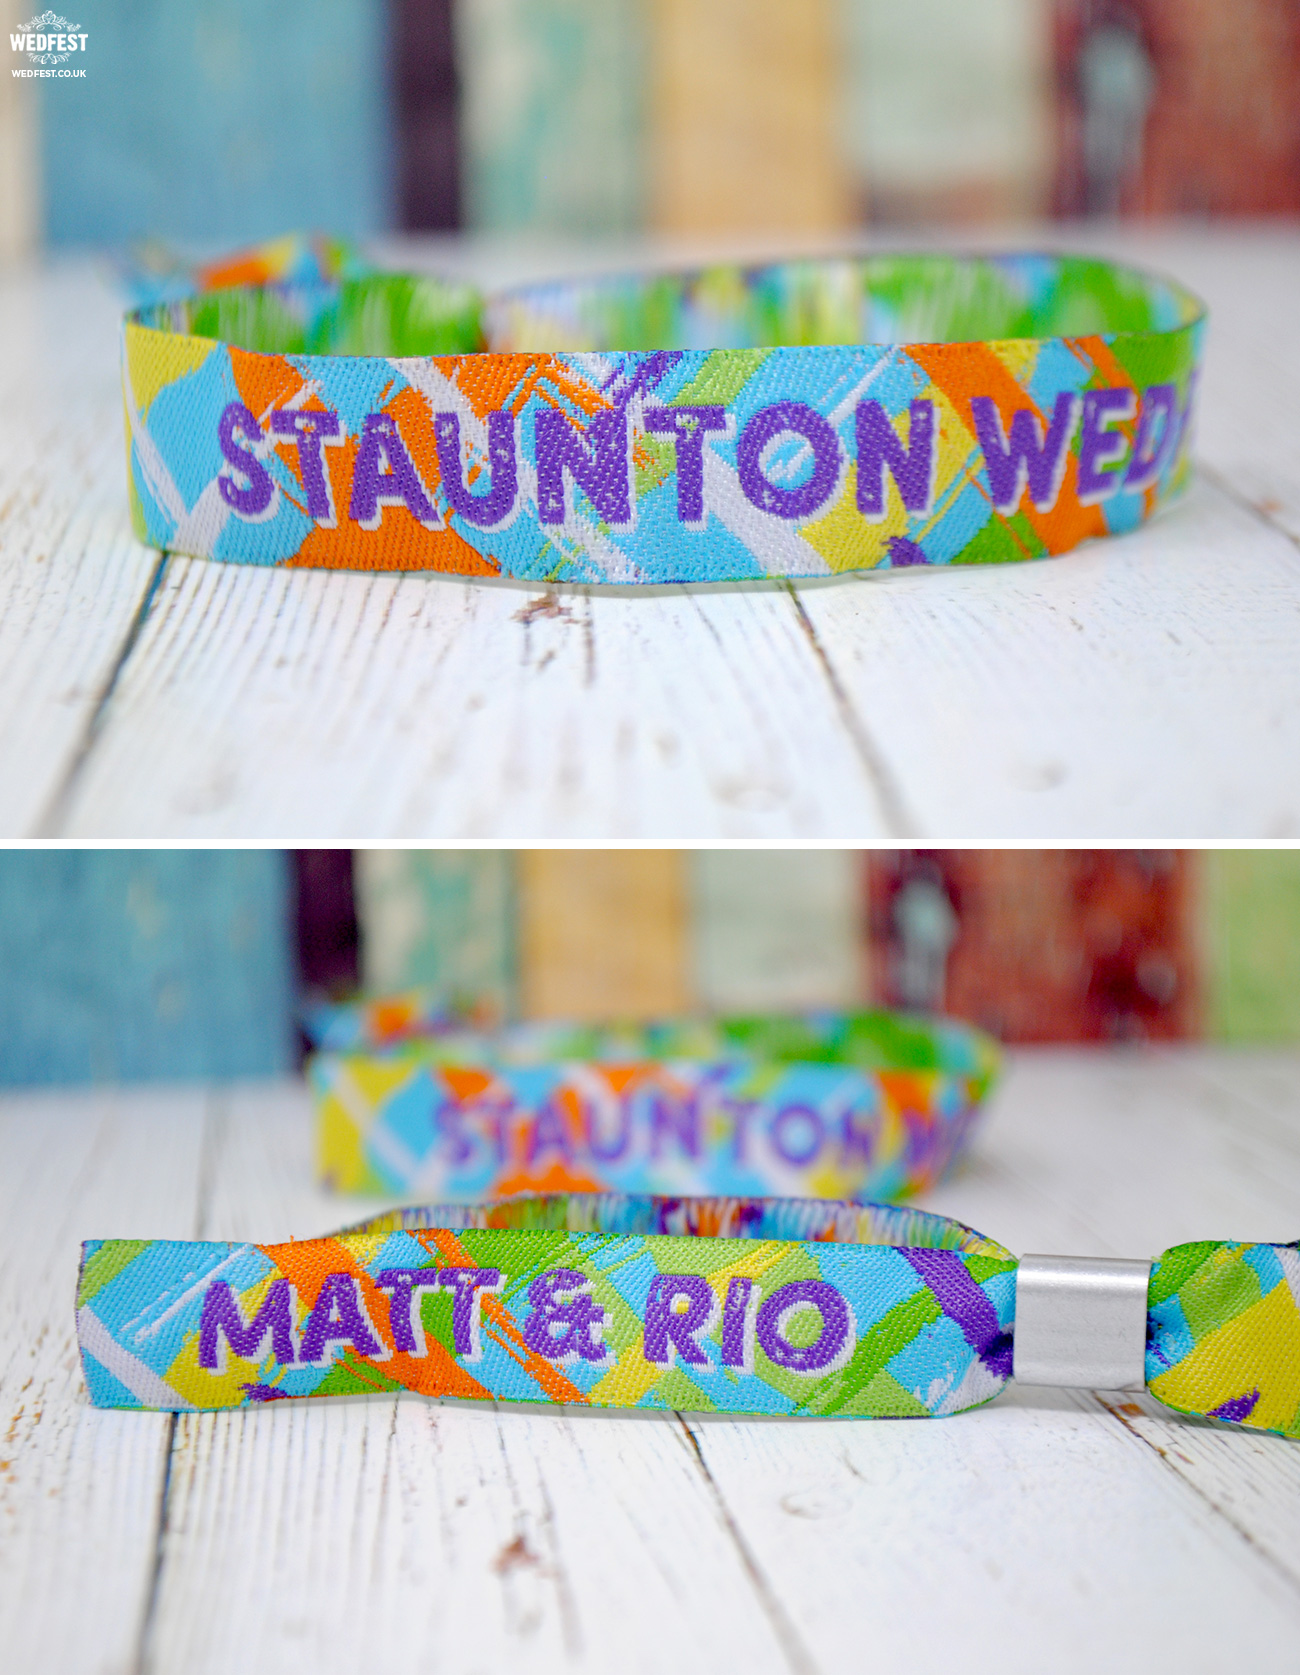 staunton wedfest festival wedding wristbands